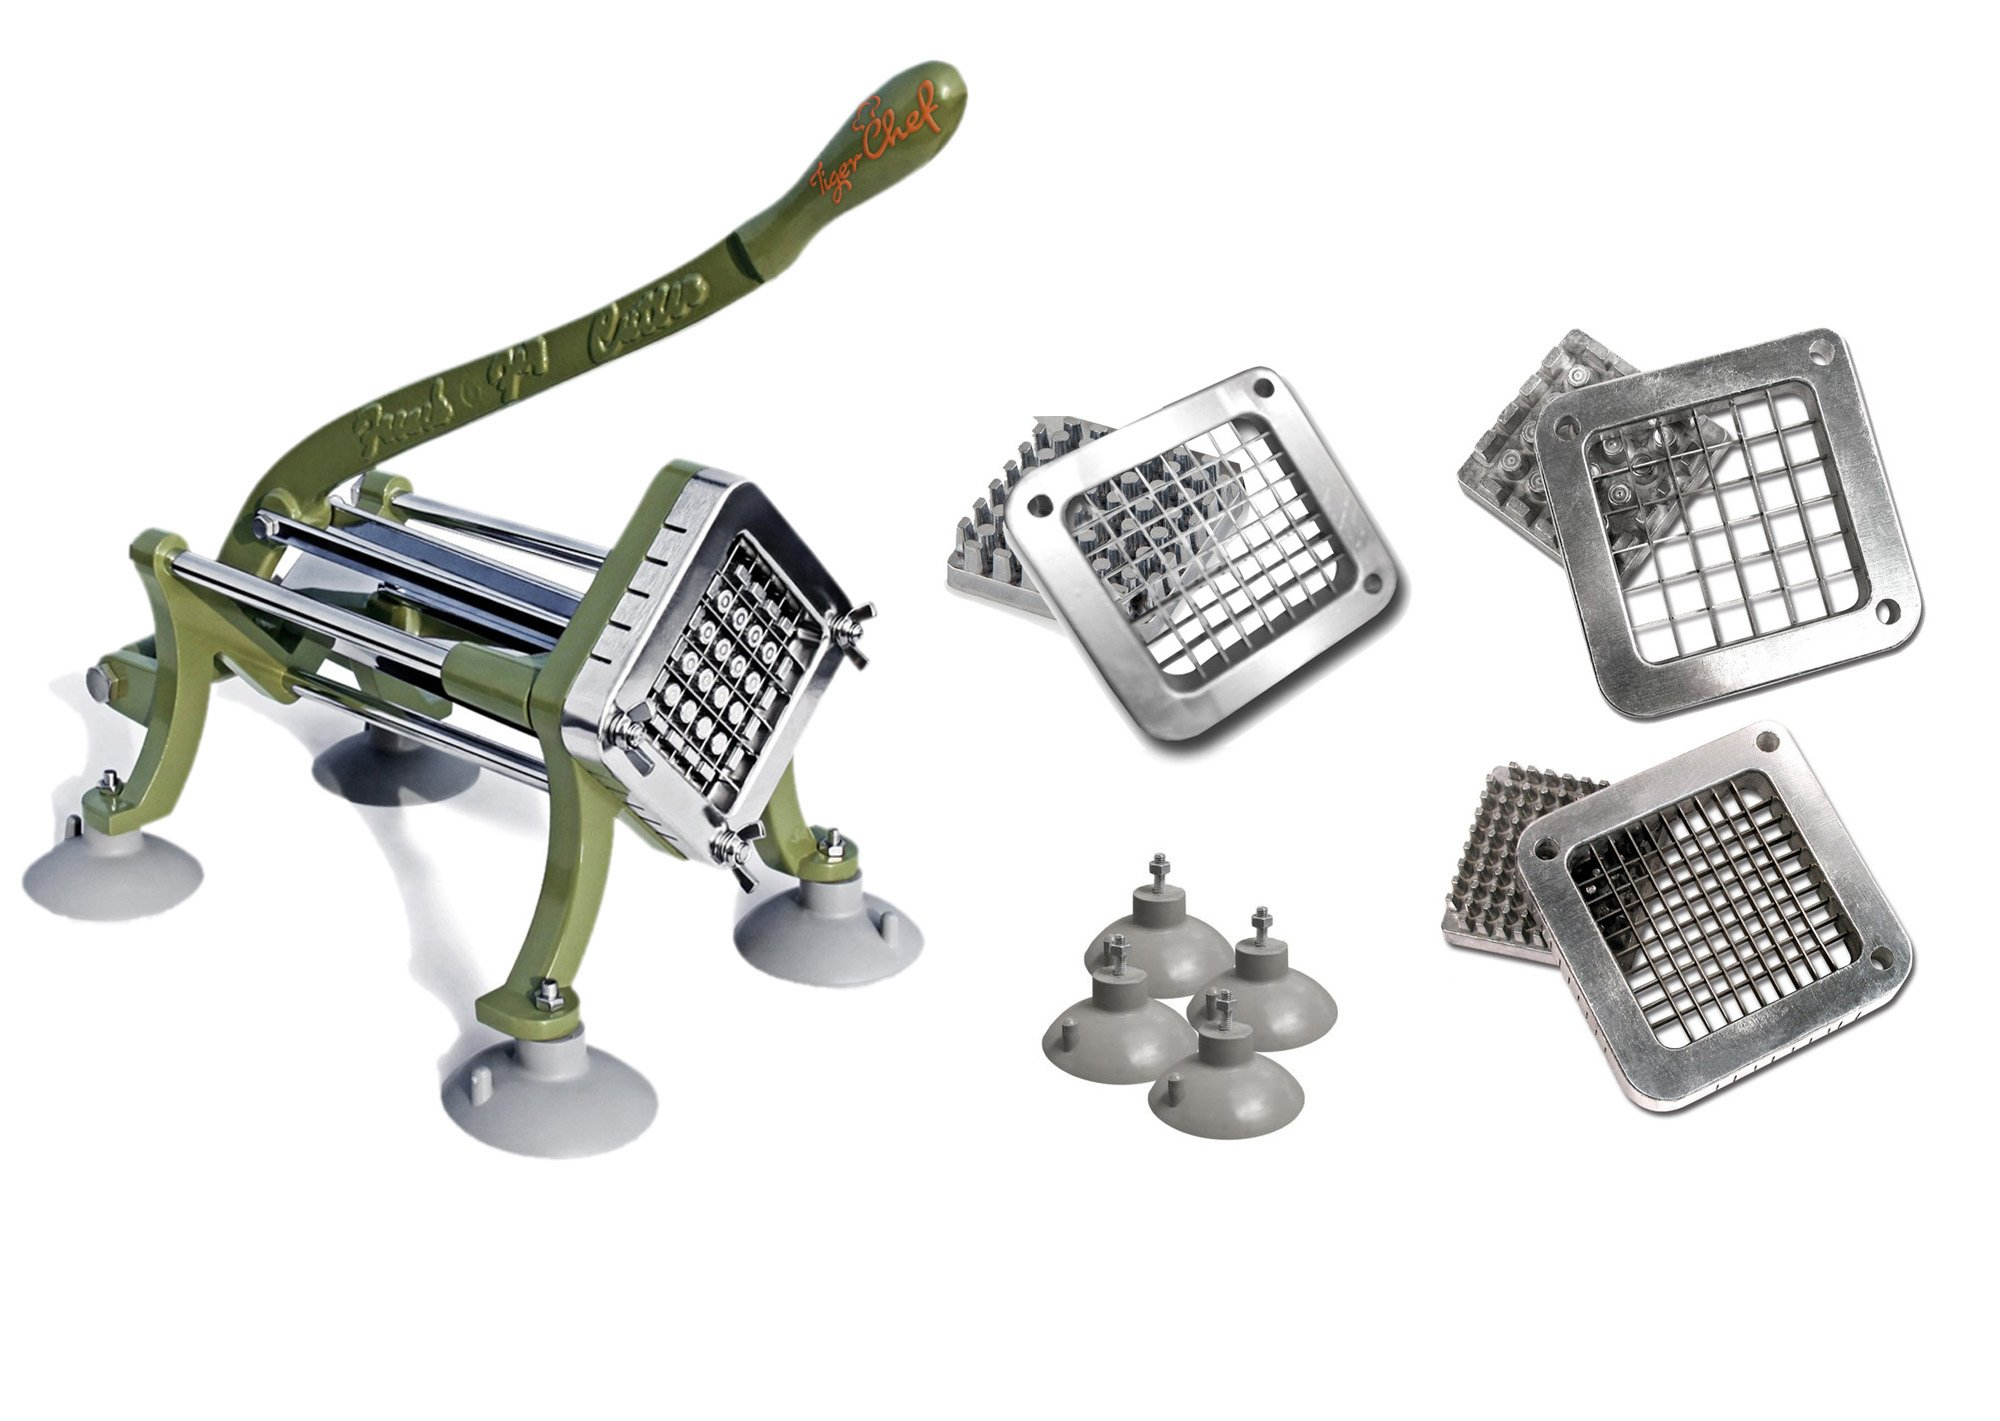 Have you been slicing and dicing your french fries by hand or with a plastic vegetable slicer? Commercial kitchen or not, we have a feeling that once you try our cutter you won't want to go back.